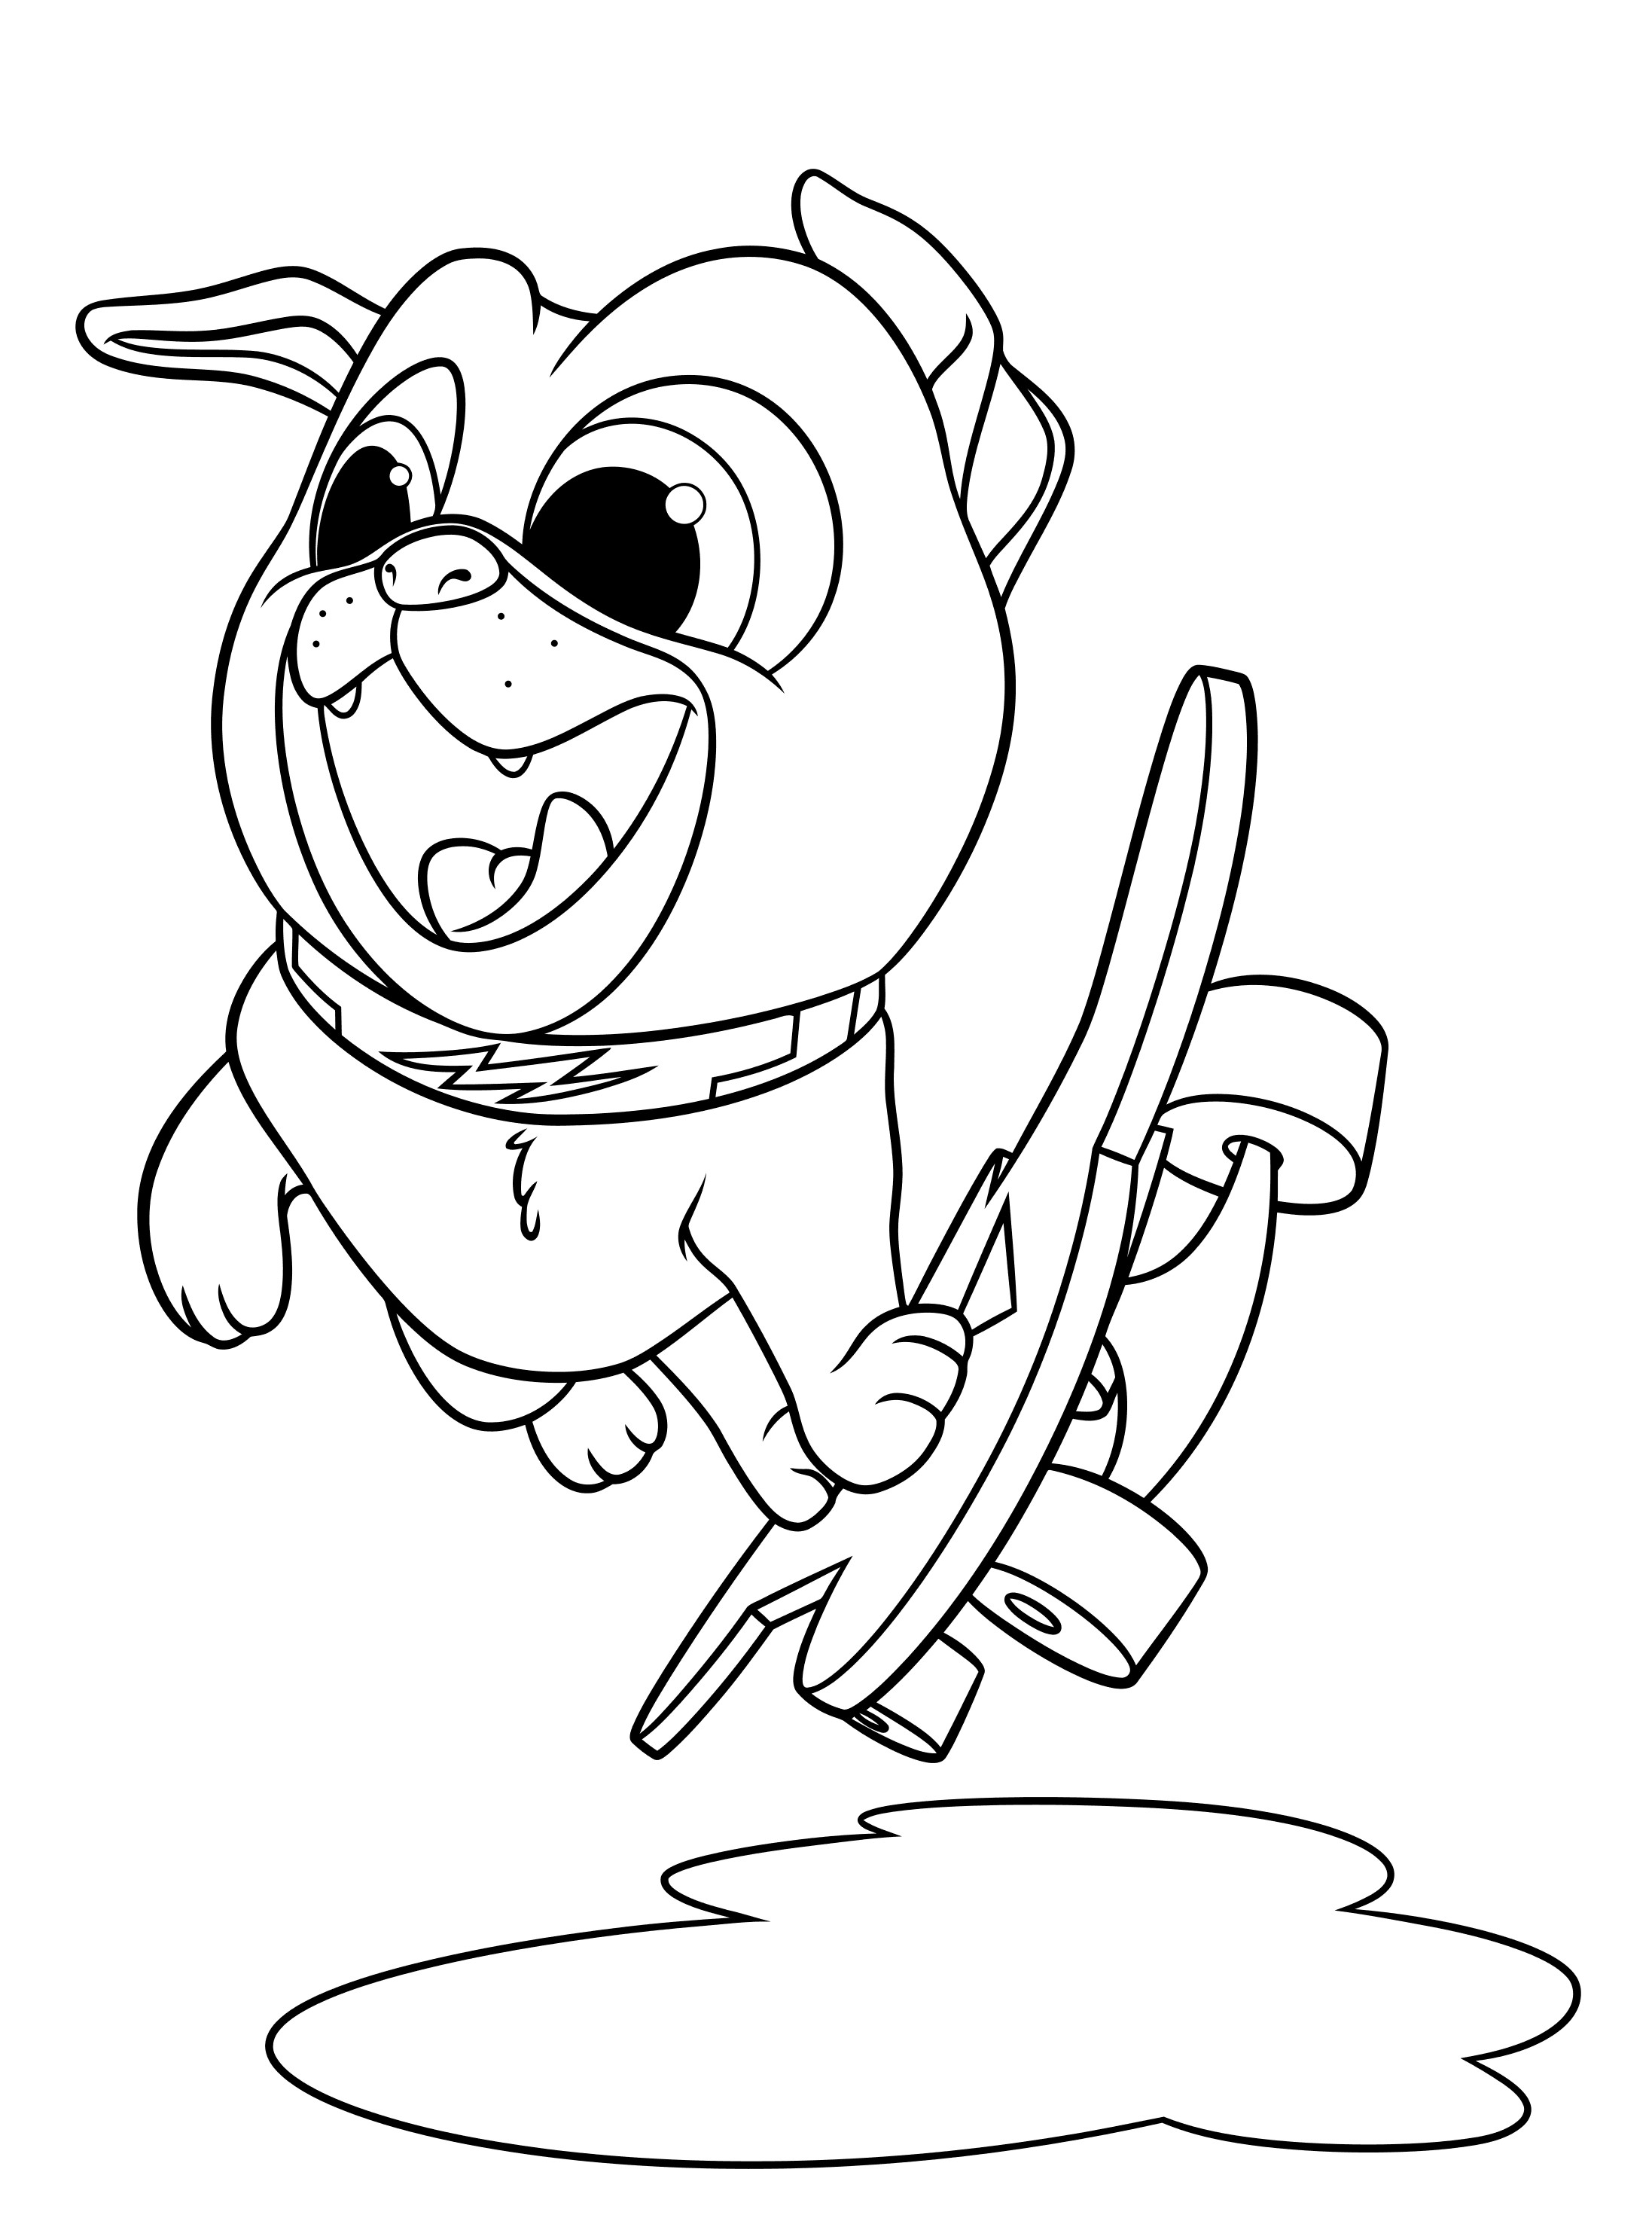 cute dogs coloring pages cute dog with heart coloring page free printable dogs cute pages coloring